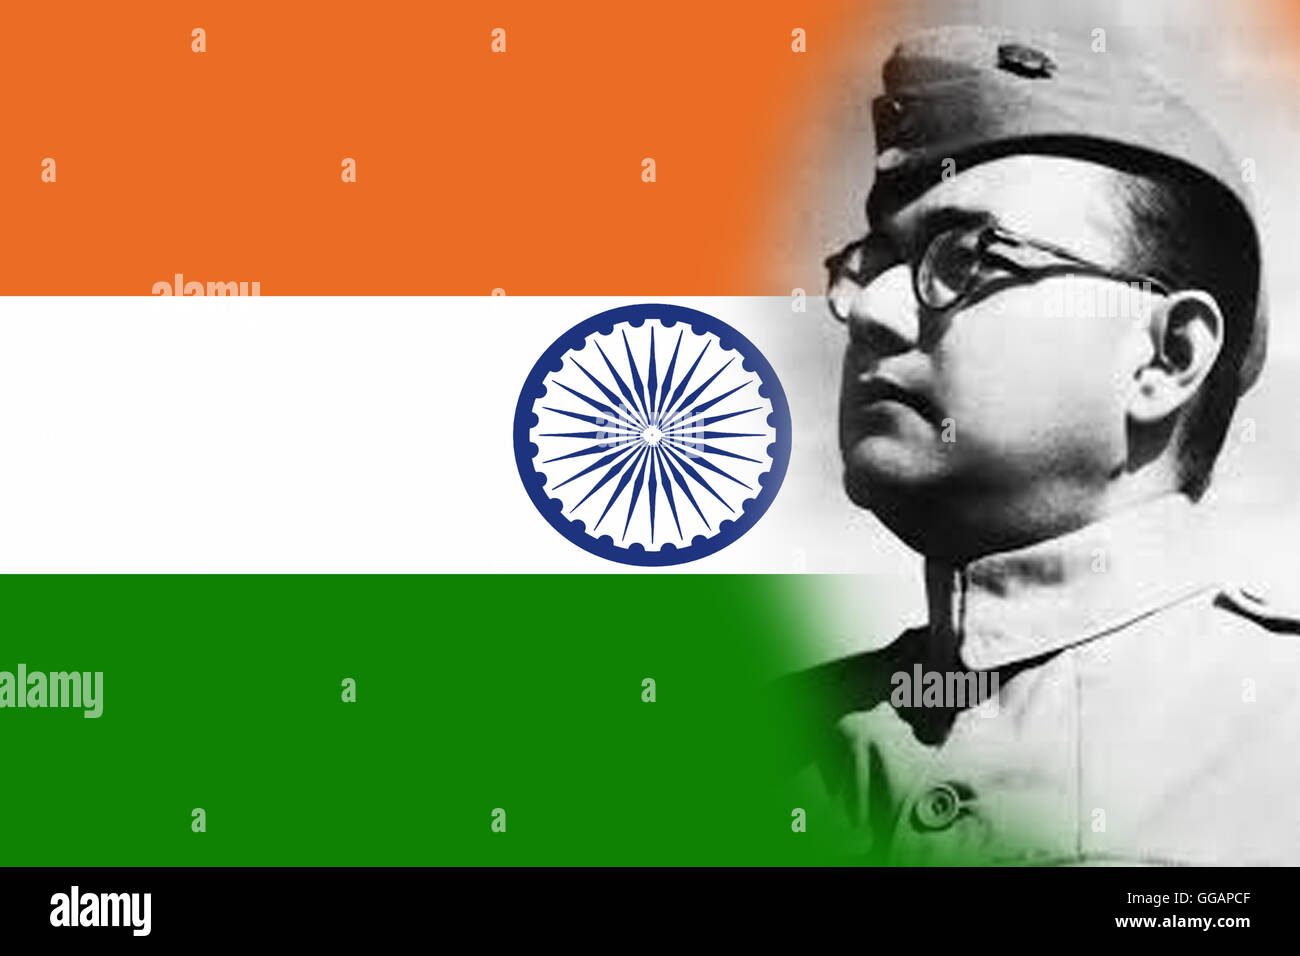 nation and true patriot What is the difference, if any, between nationalism and  if any, between nationalism and patriotism  a patriot, by contrast, wants the nation to live up to.